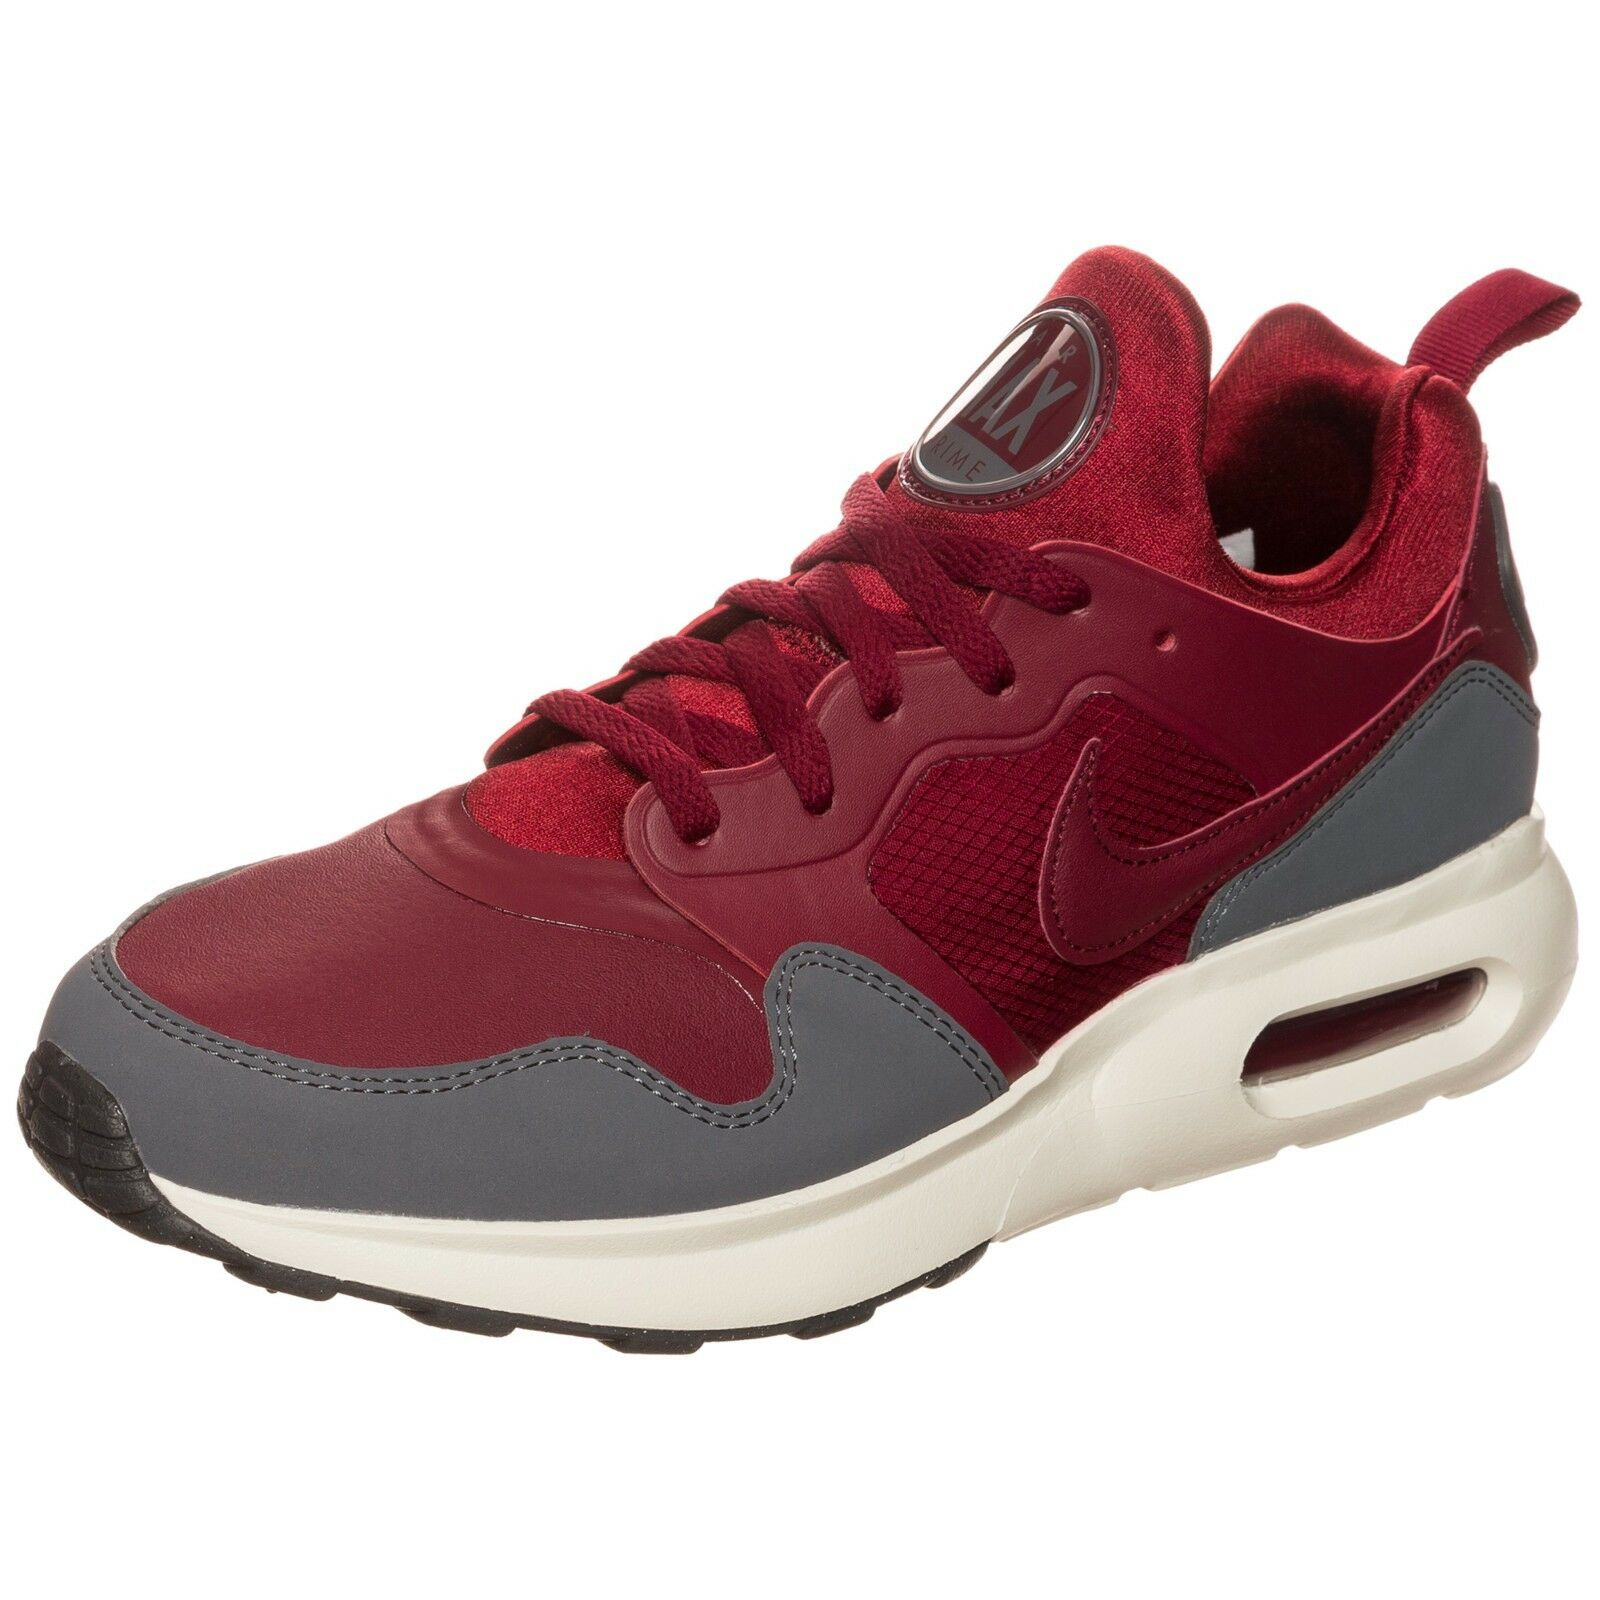 Nike Air Max Prime SL Team Red/Dark Grey Sizes 8-12 New In Box